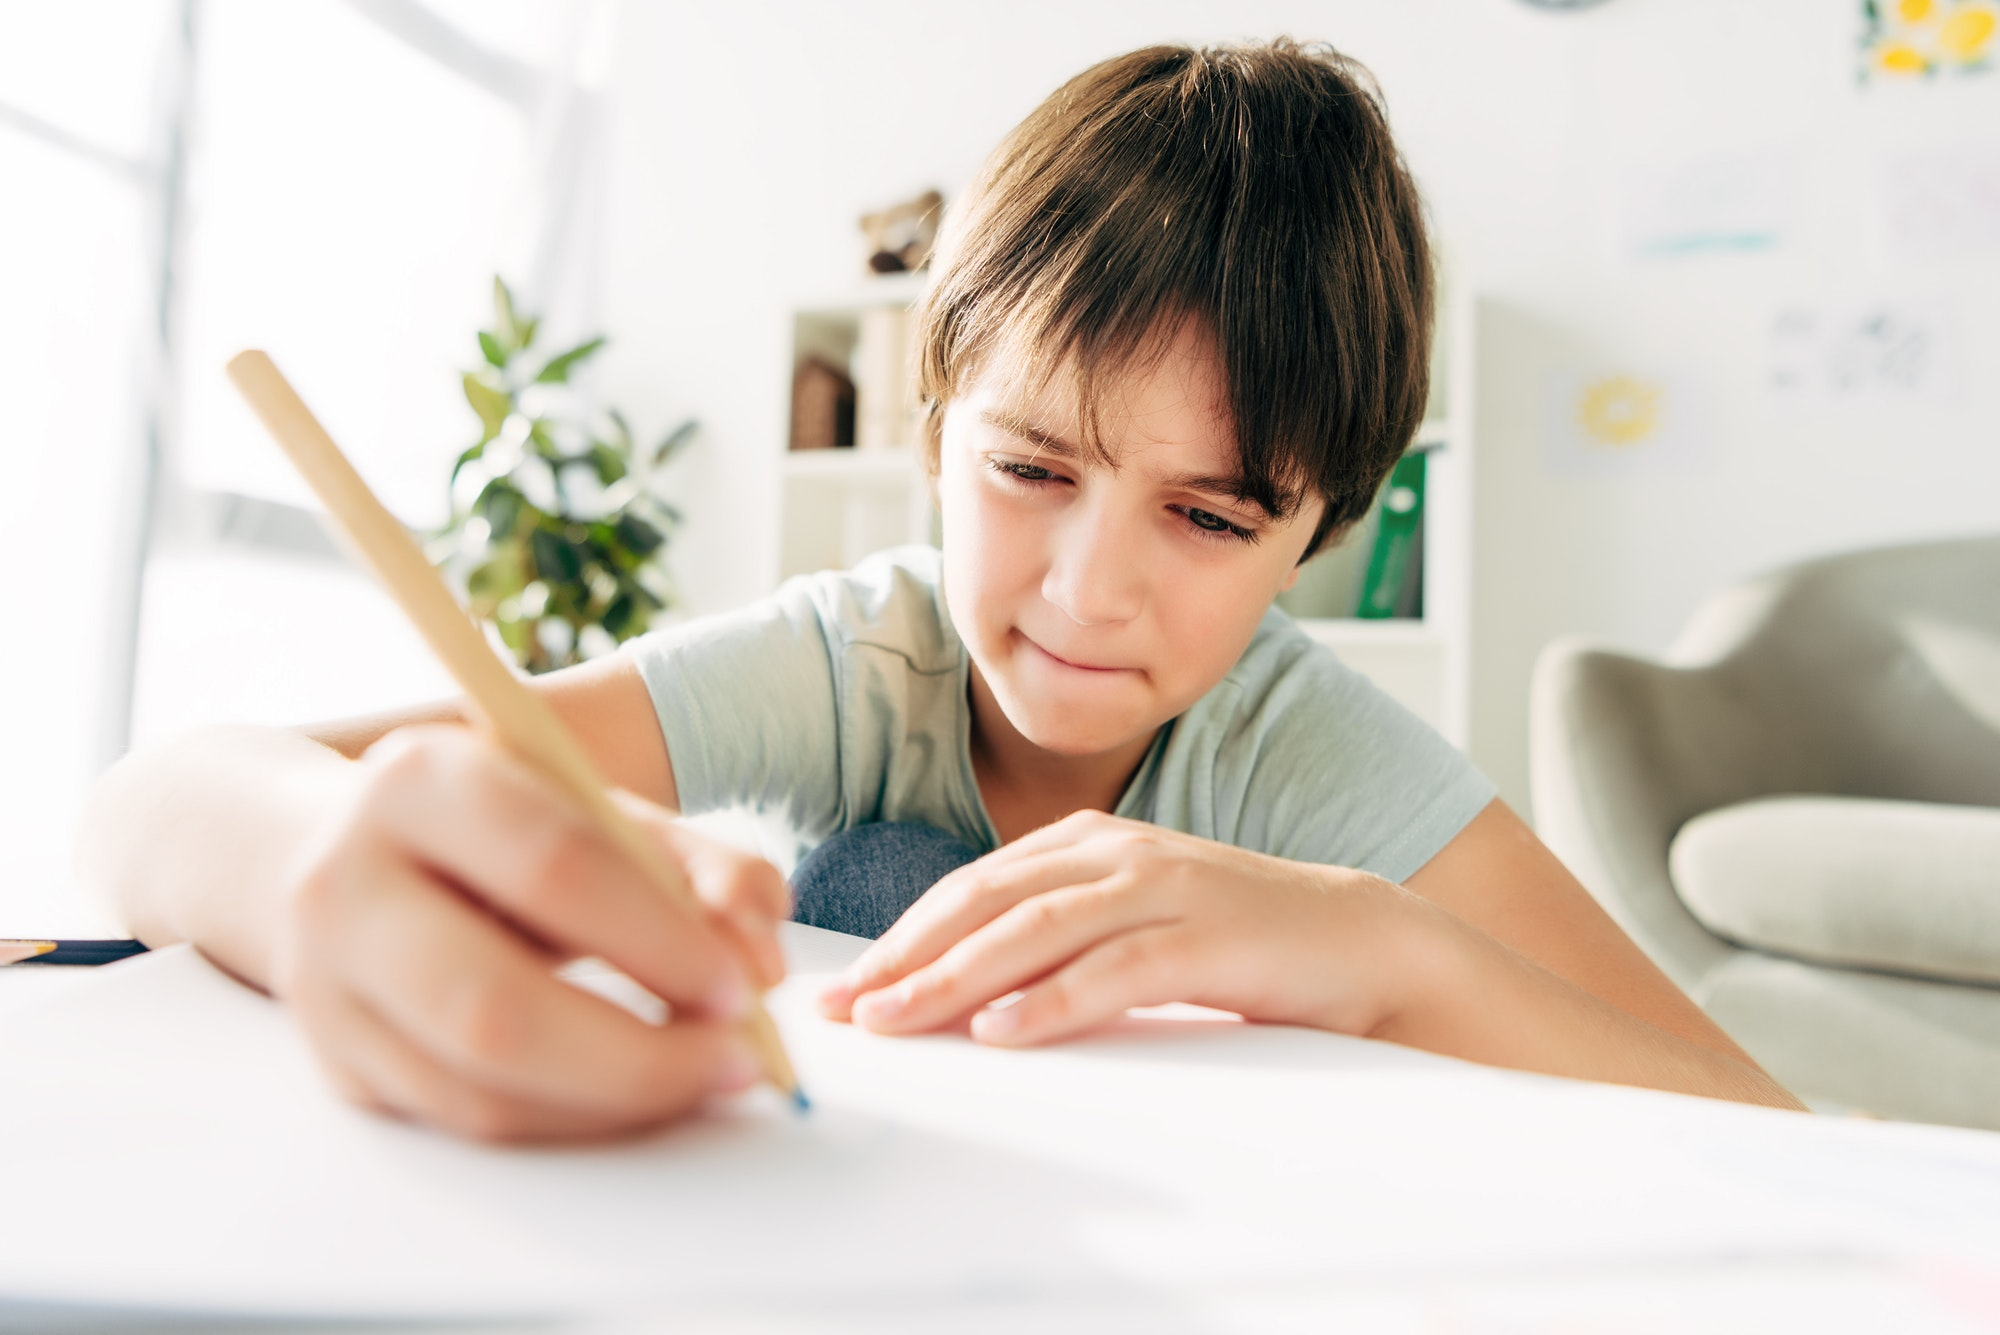 kid with dyslexia drawing with pencil and sitting at table